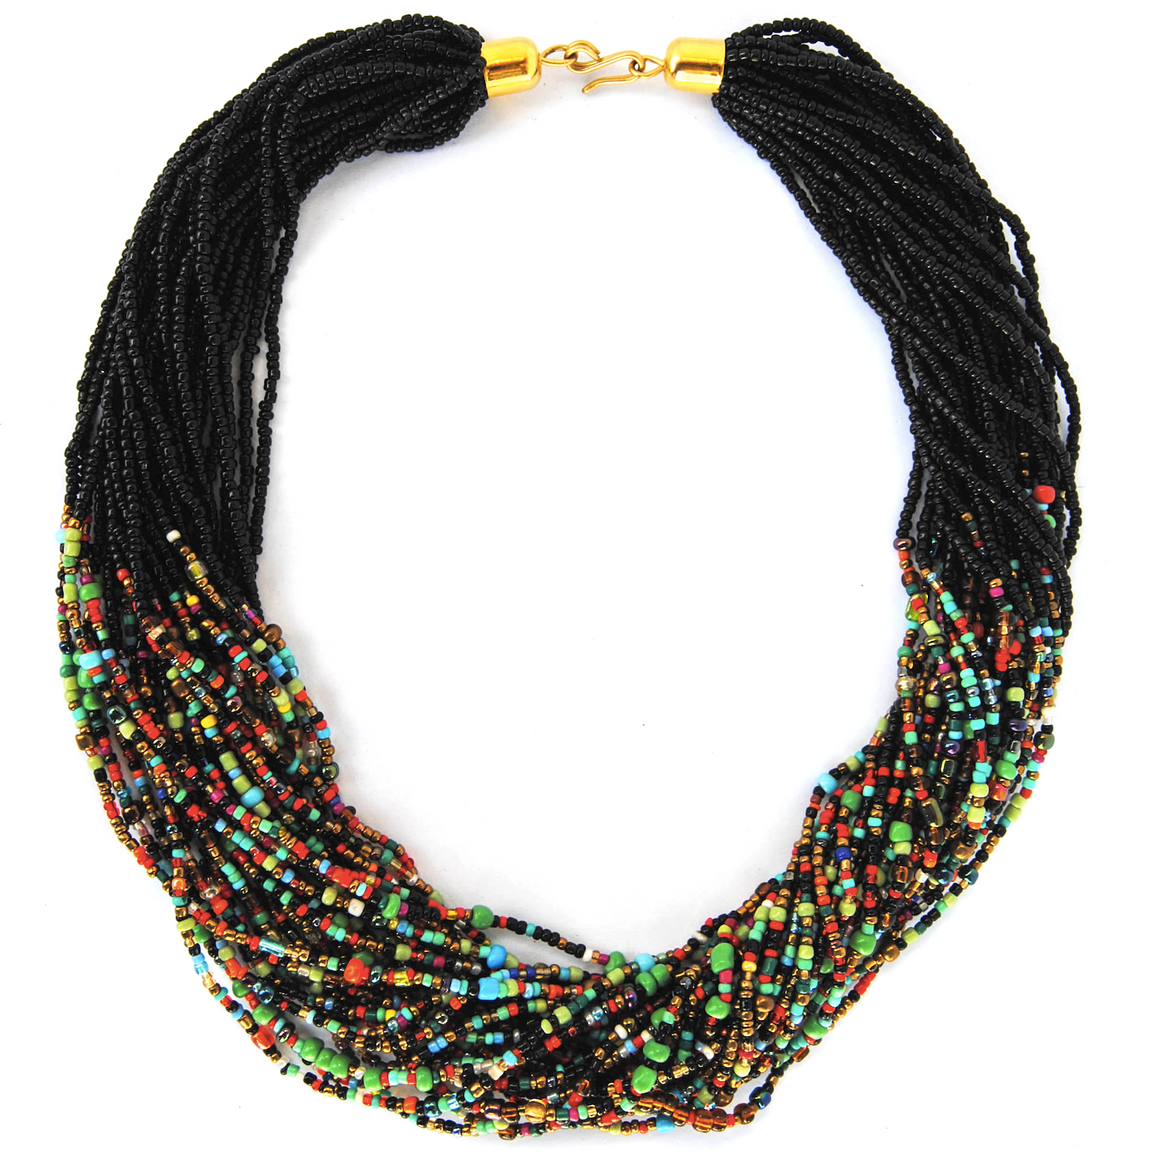 Black and Multicolor Beaded Necklace